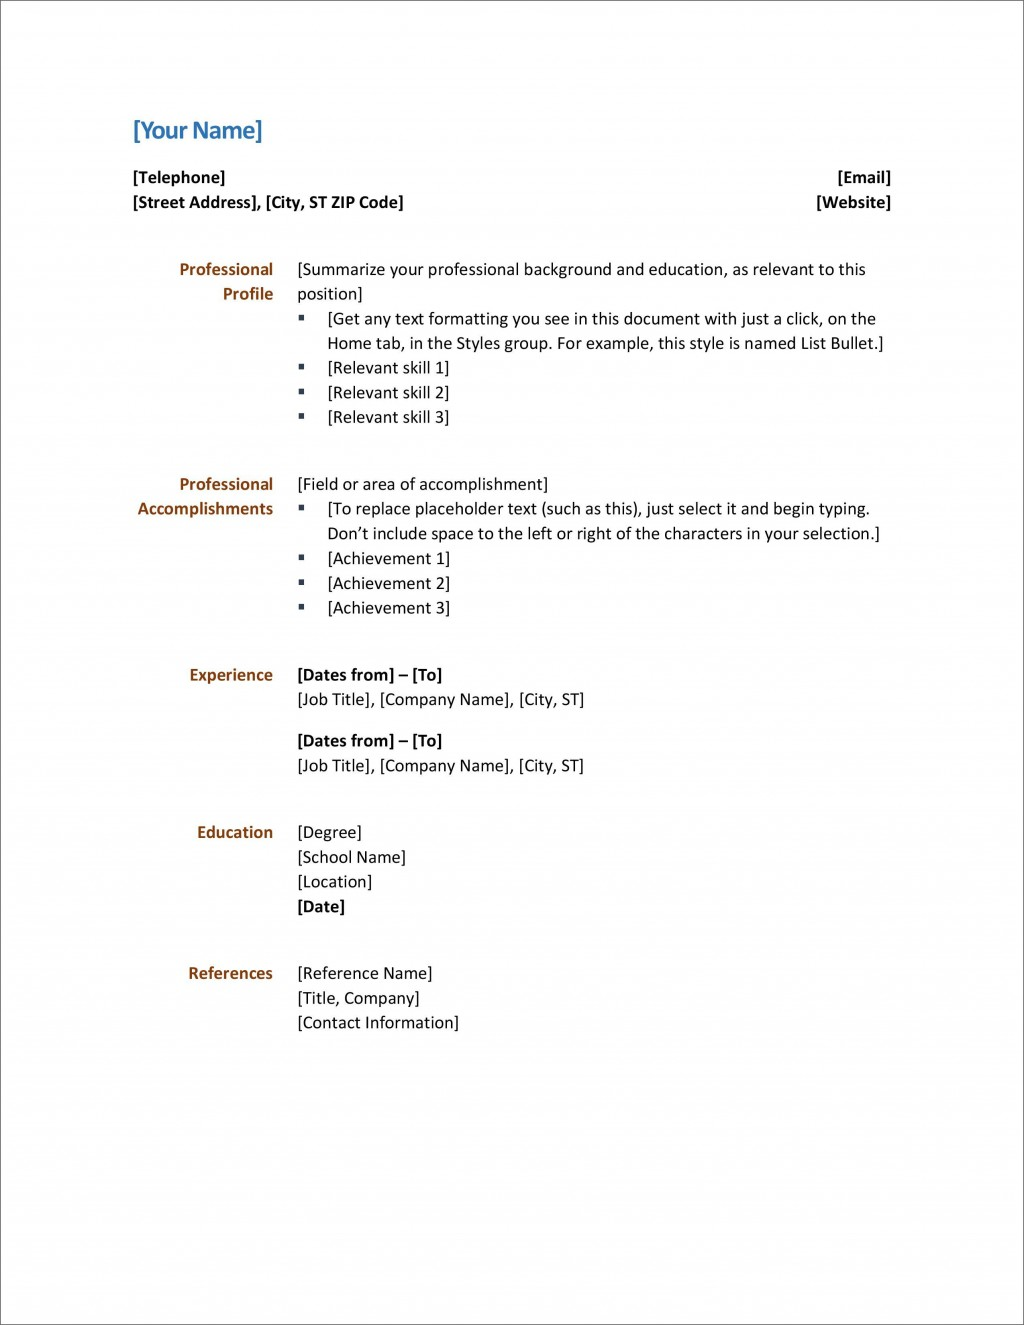 003 Amazing Microsoft Office Template Resume Picture  Word 2007 M Cv Free DownloadLarge